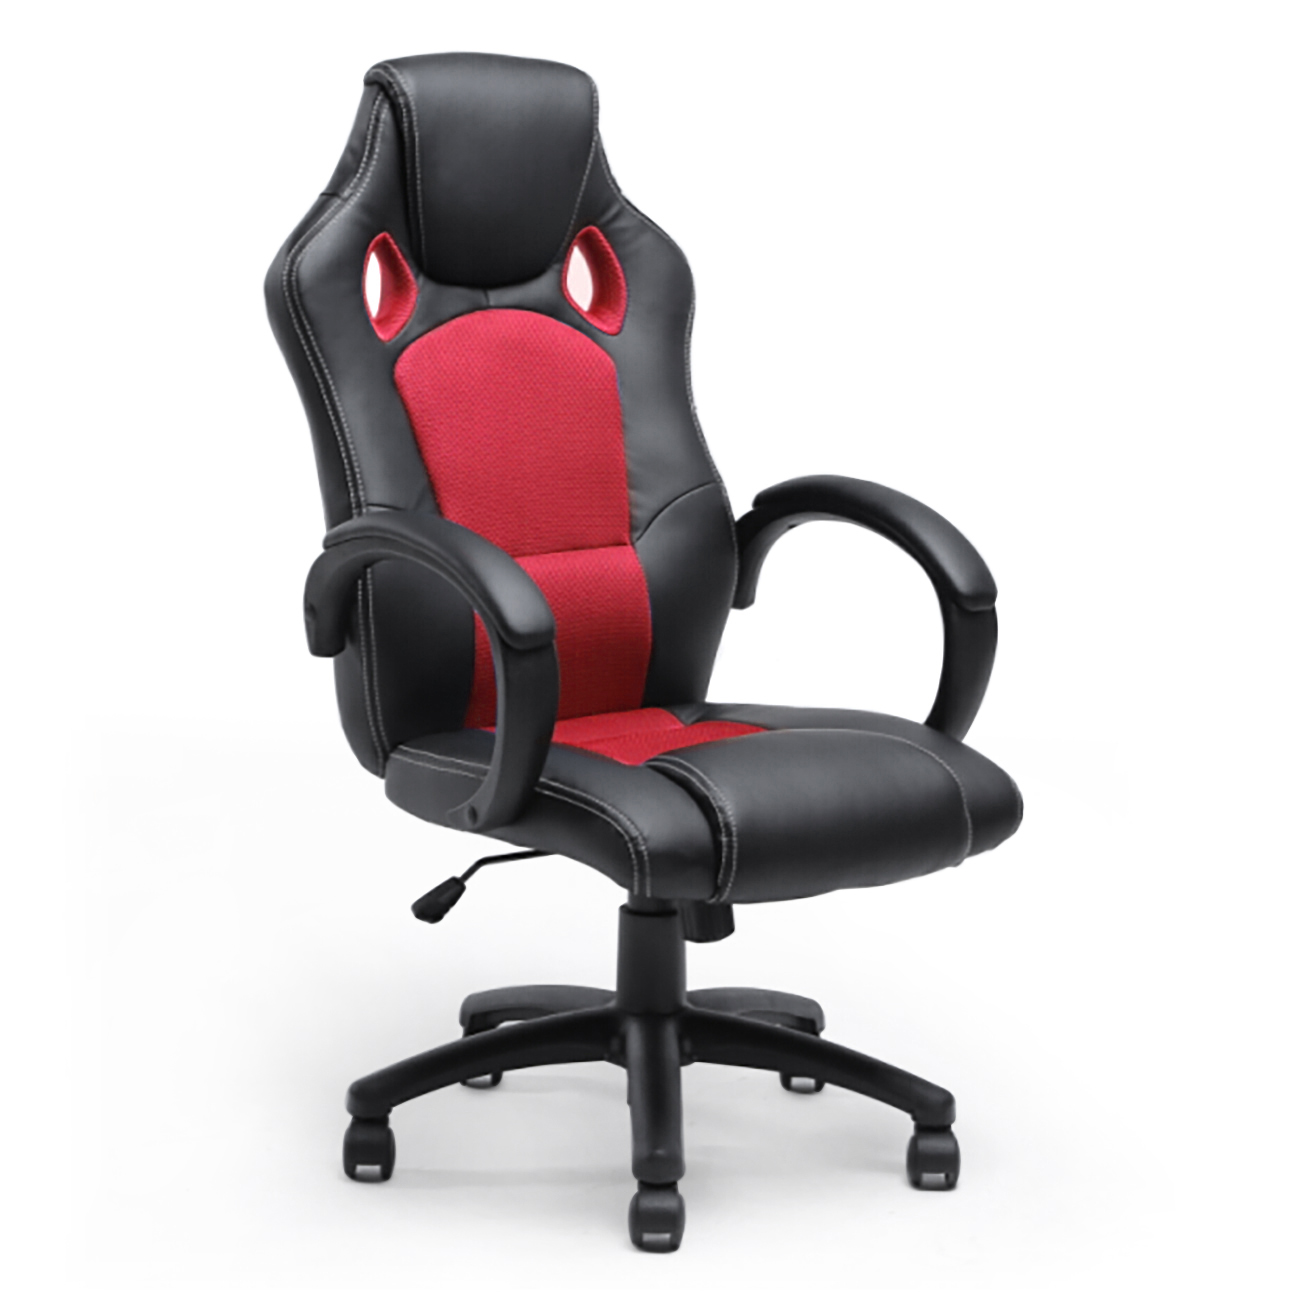 office chair ergonomic computer mesh pu leather desk seat race car